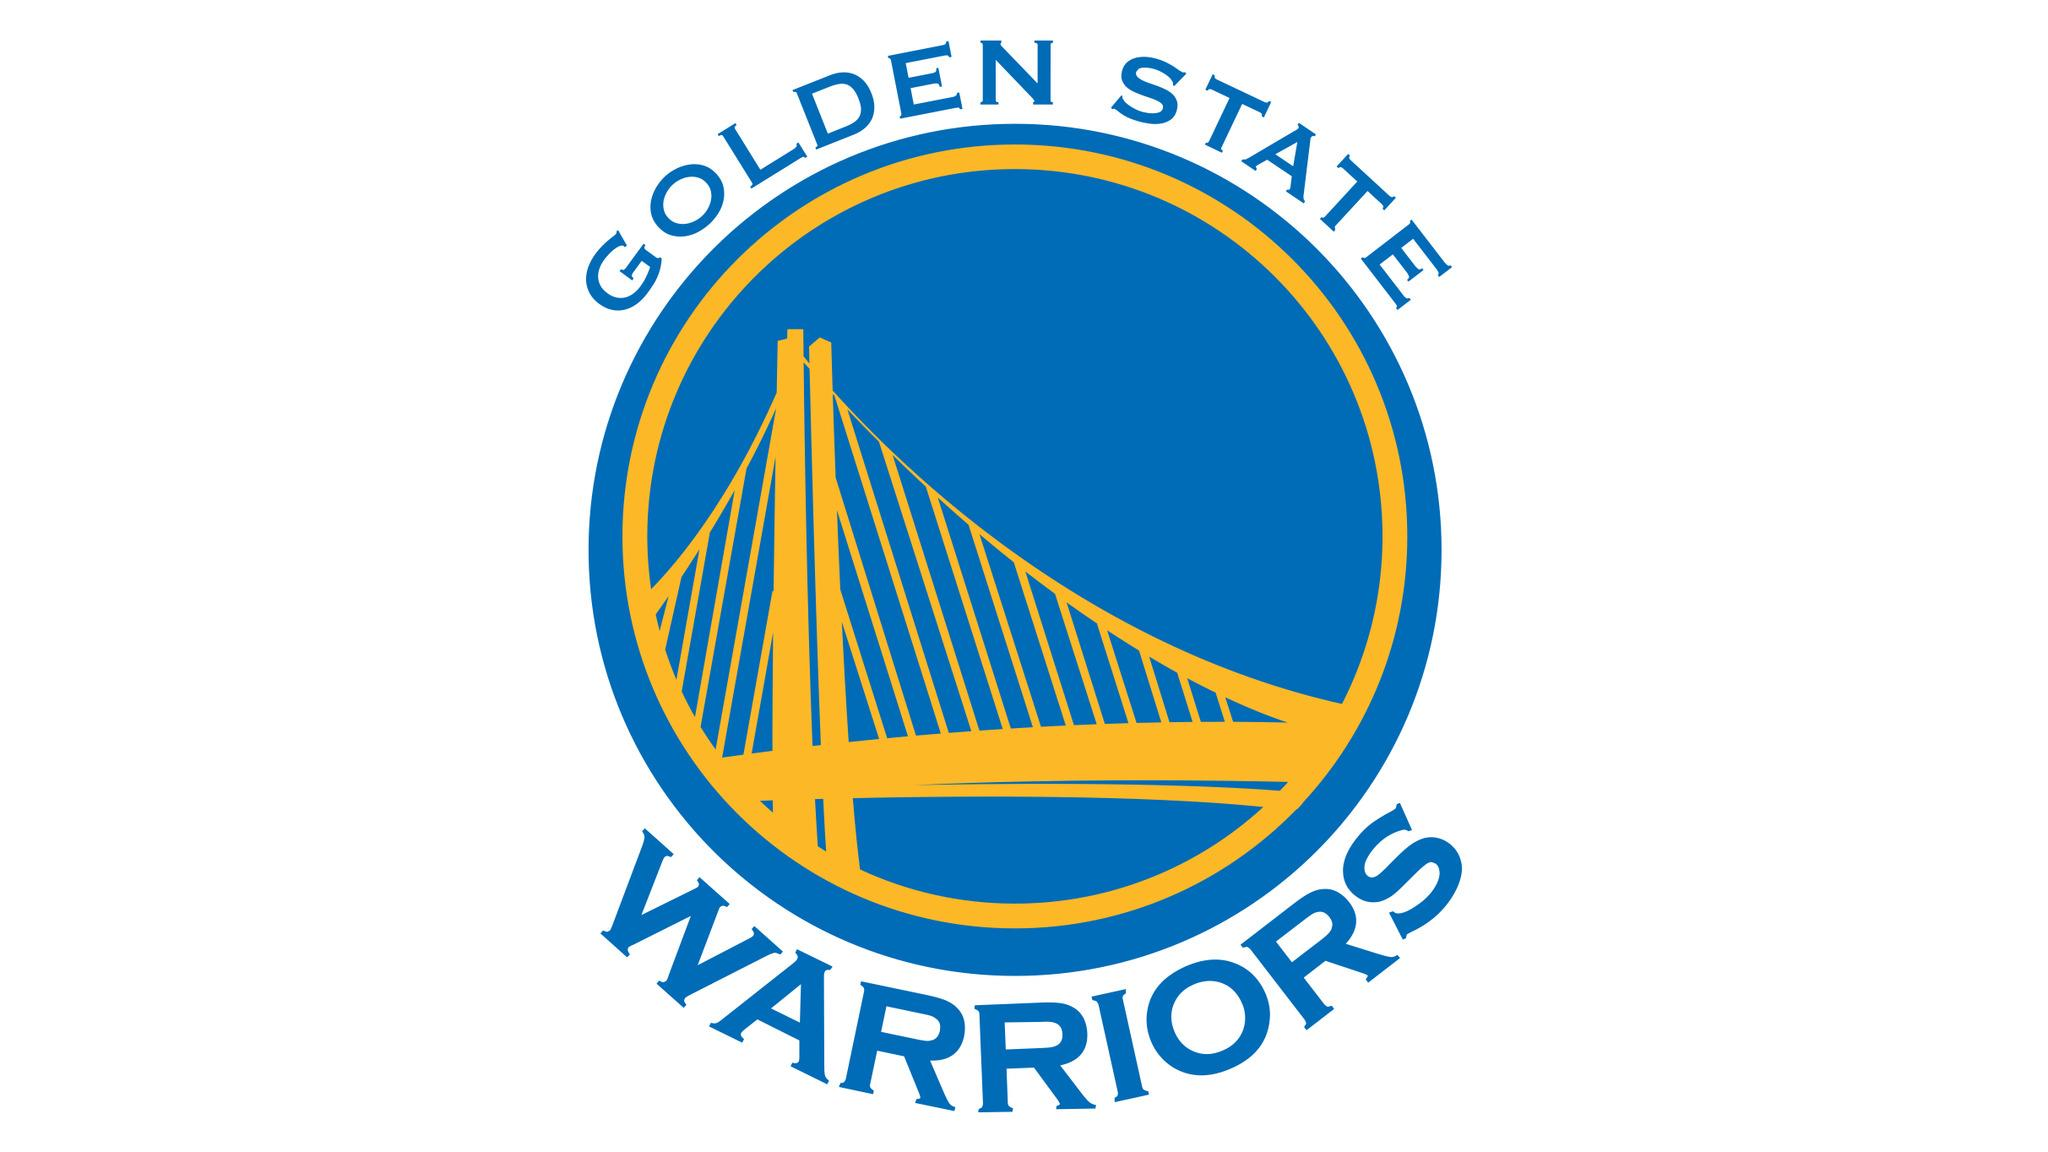 Golden State Warriors vs. Denver Nuggets - Oakland, CA 94621